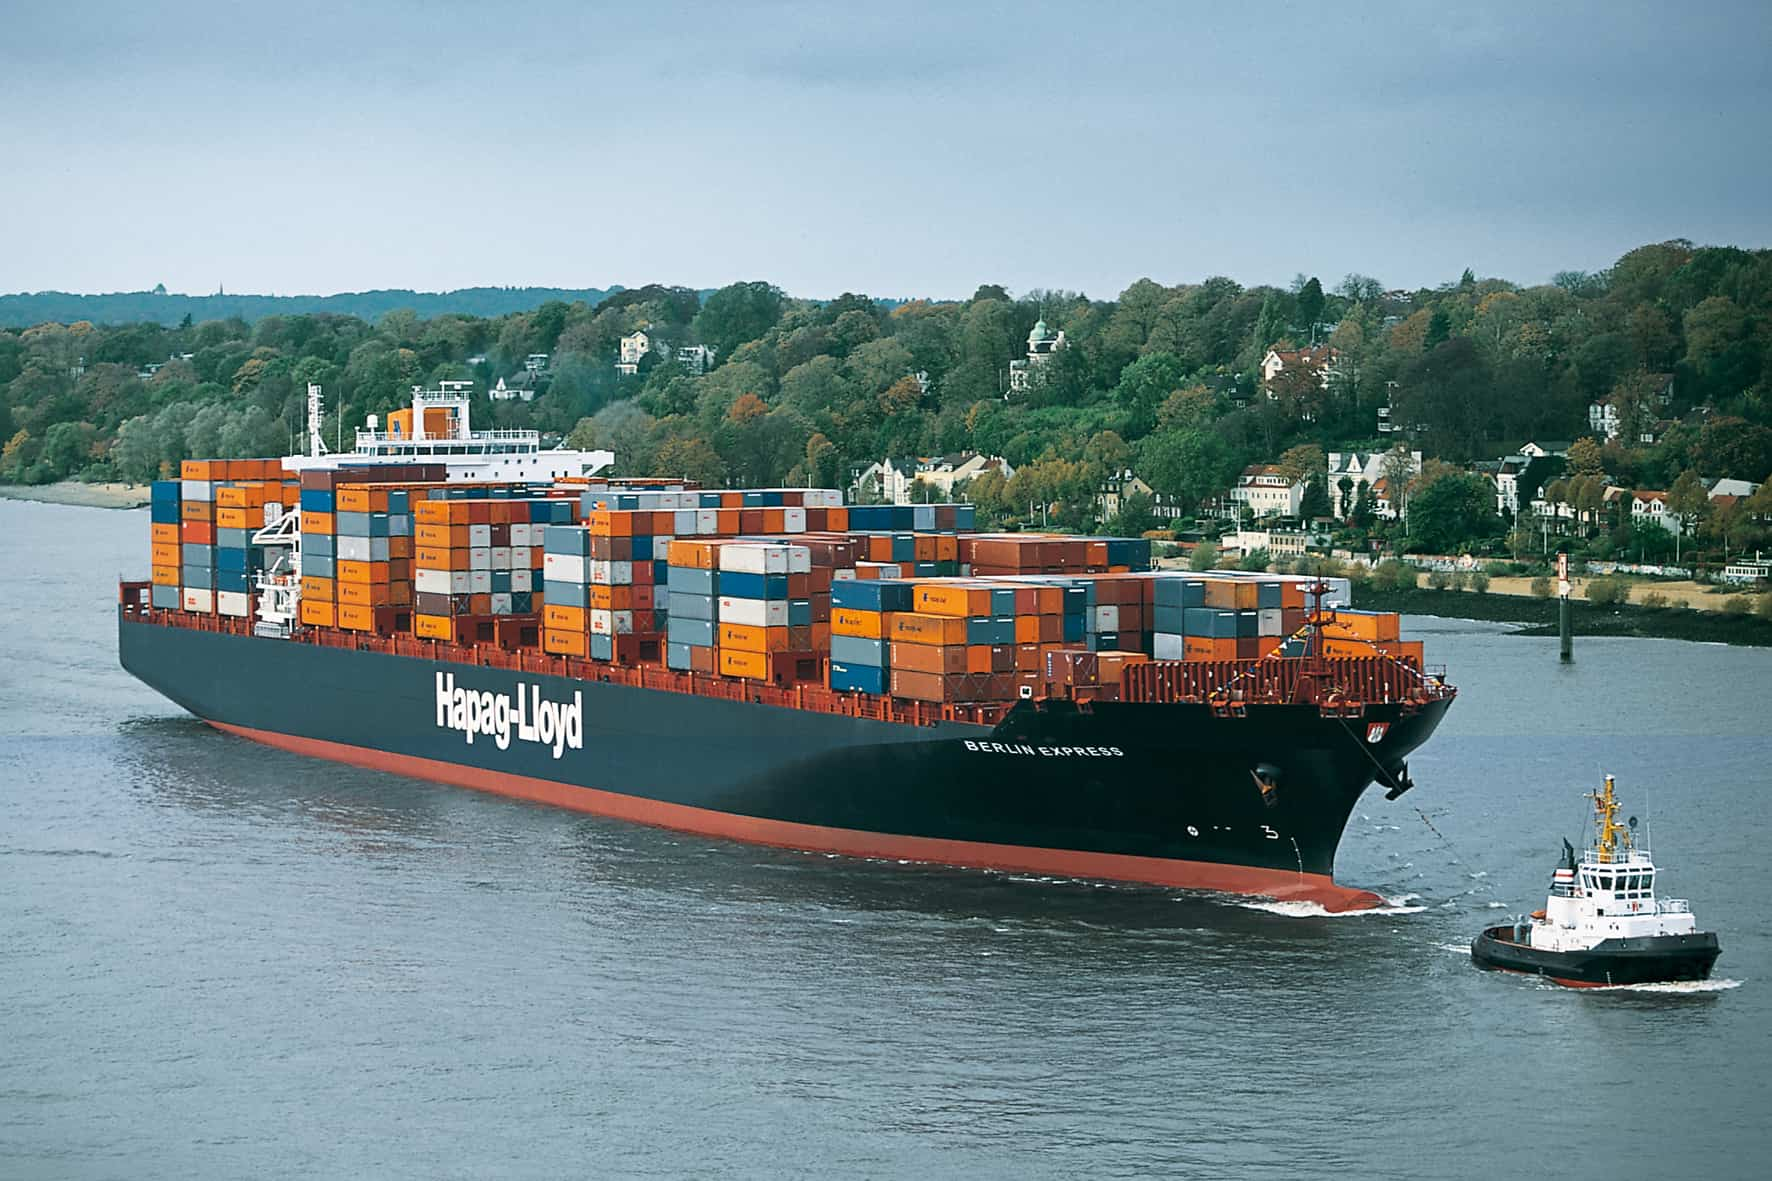 UASC and Hapag-Lloyd's merger progresses